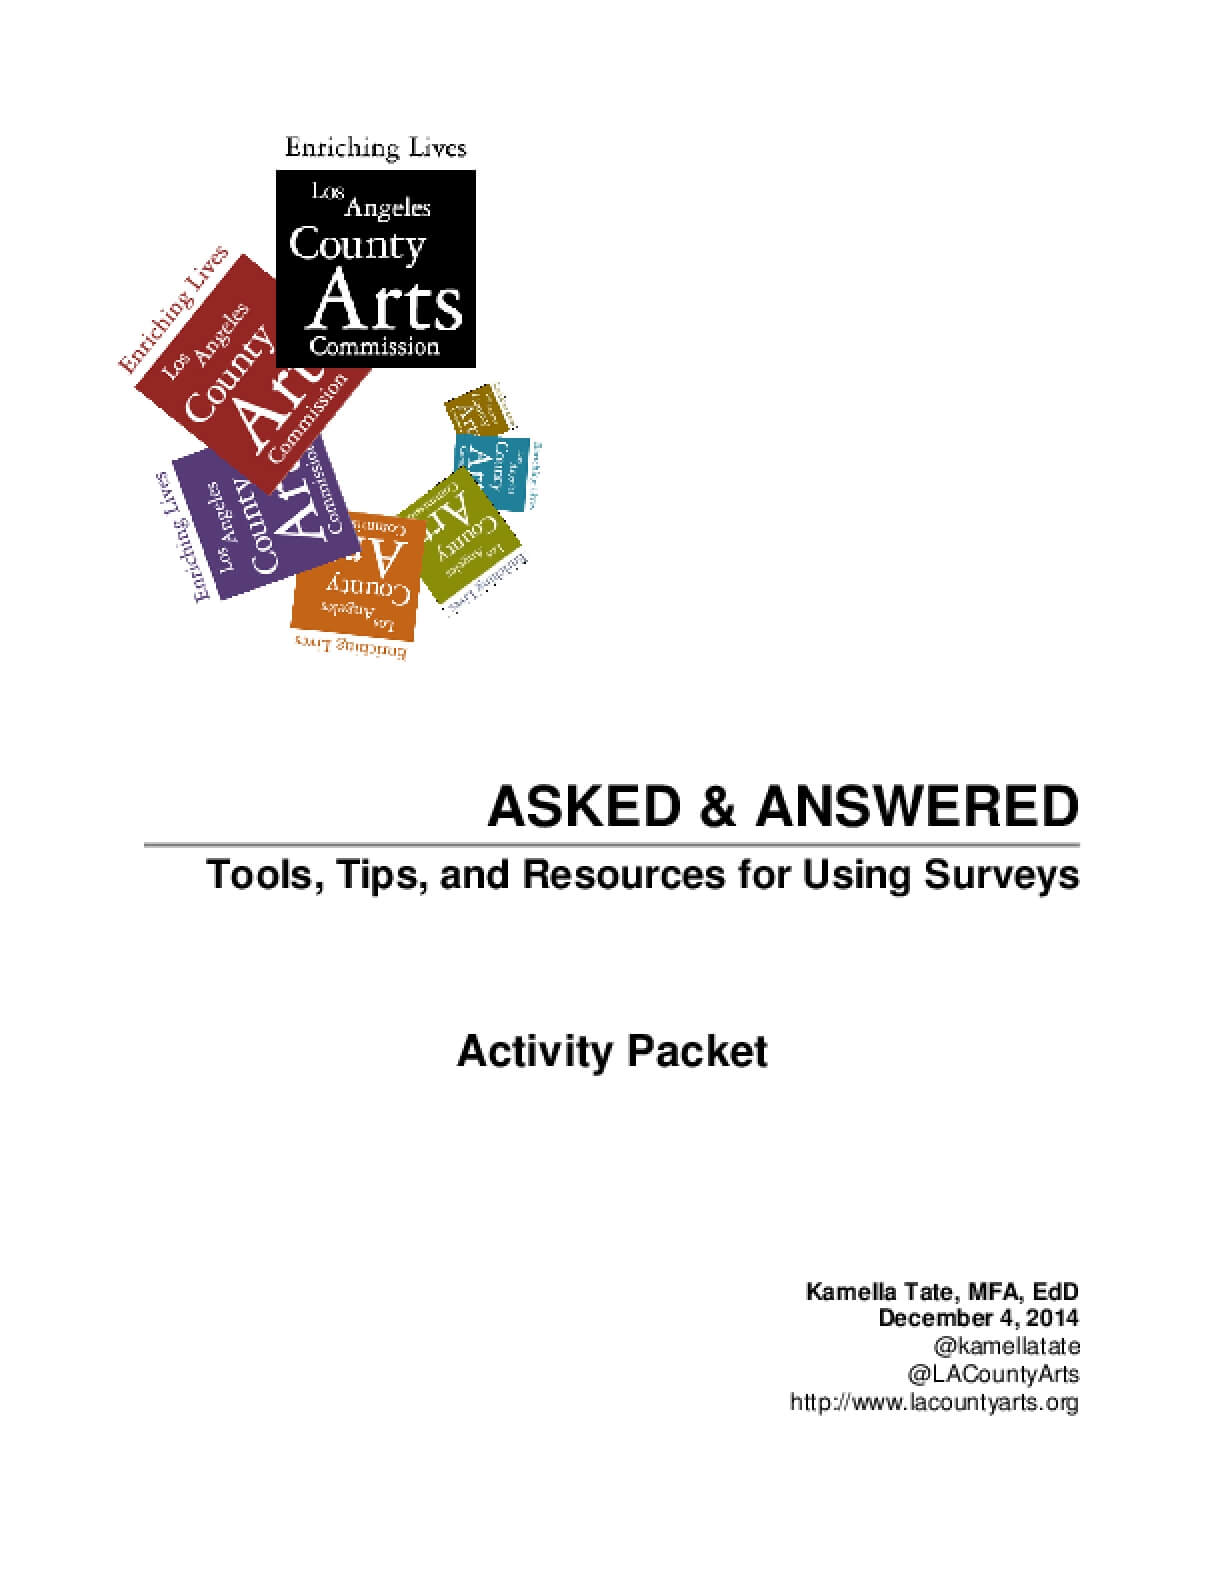 Activity Packet: Tools, Tips, and Resources for Using Surveys